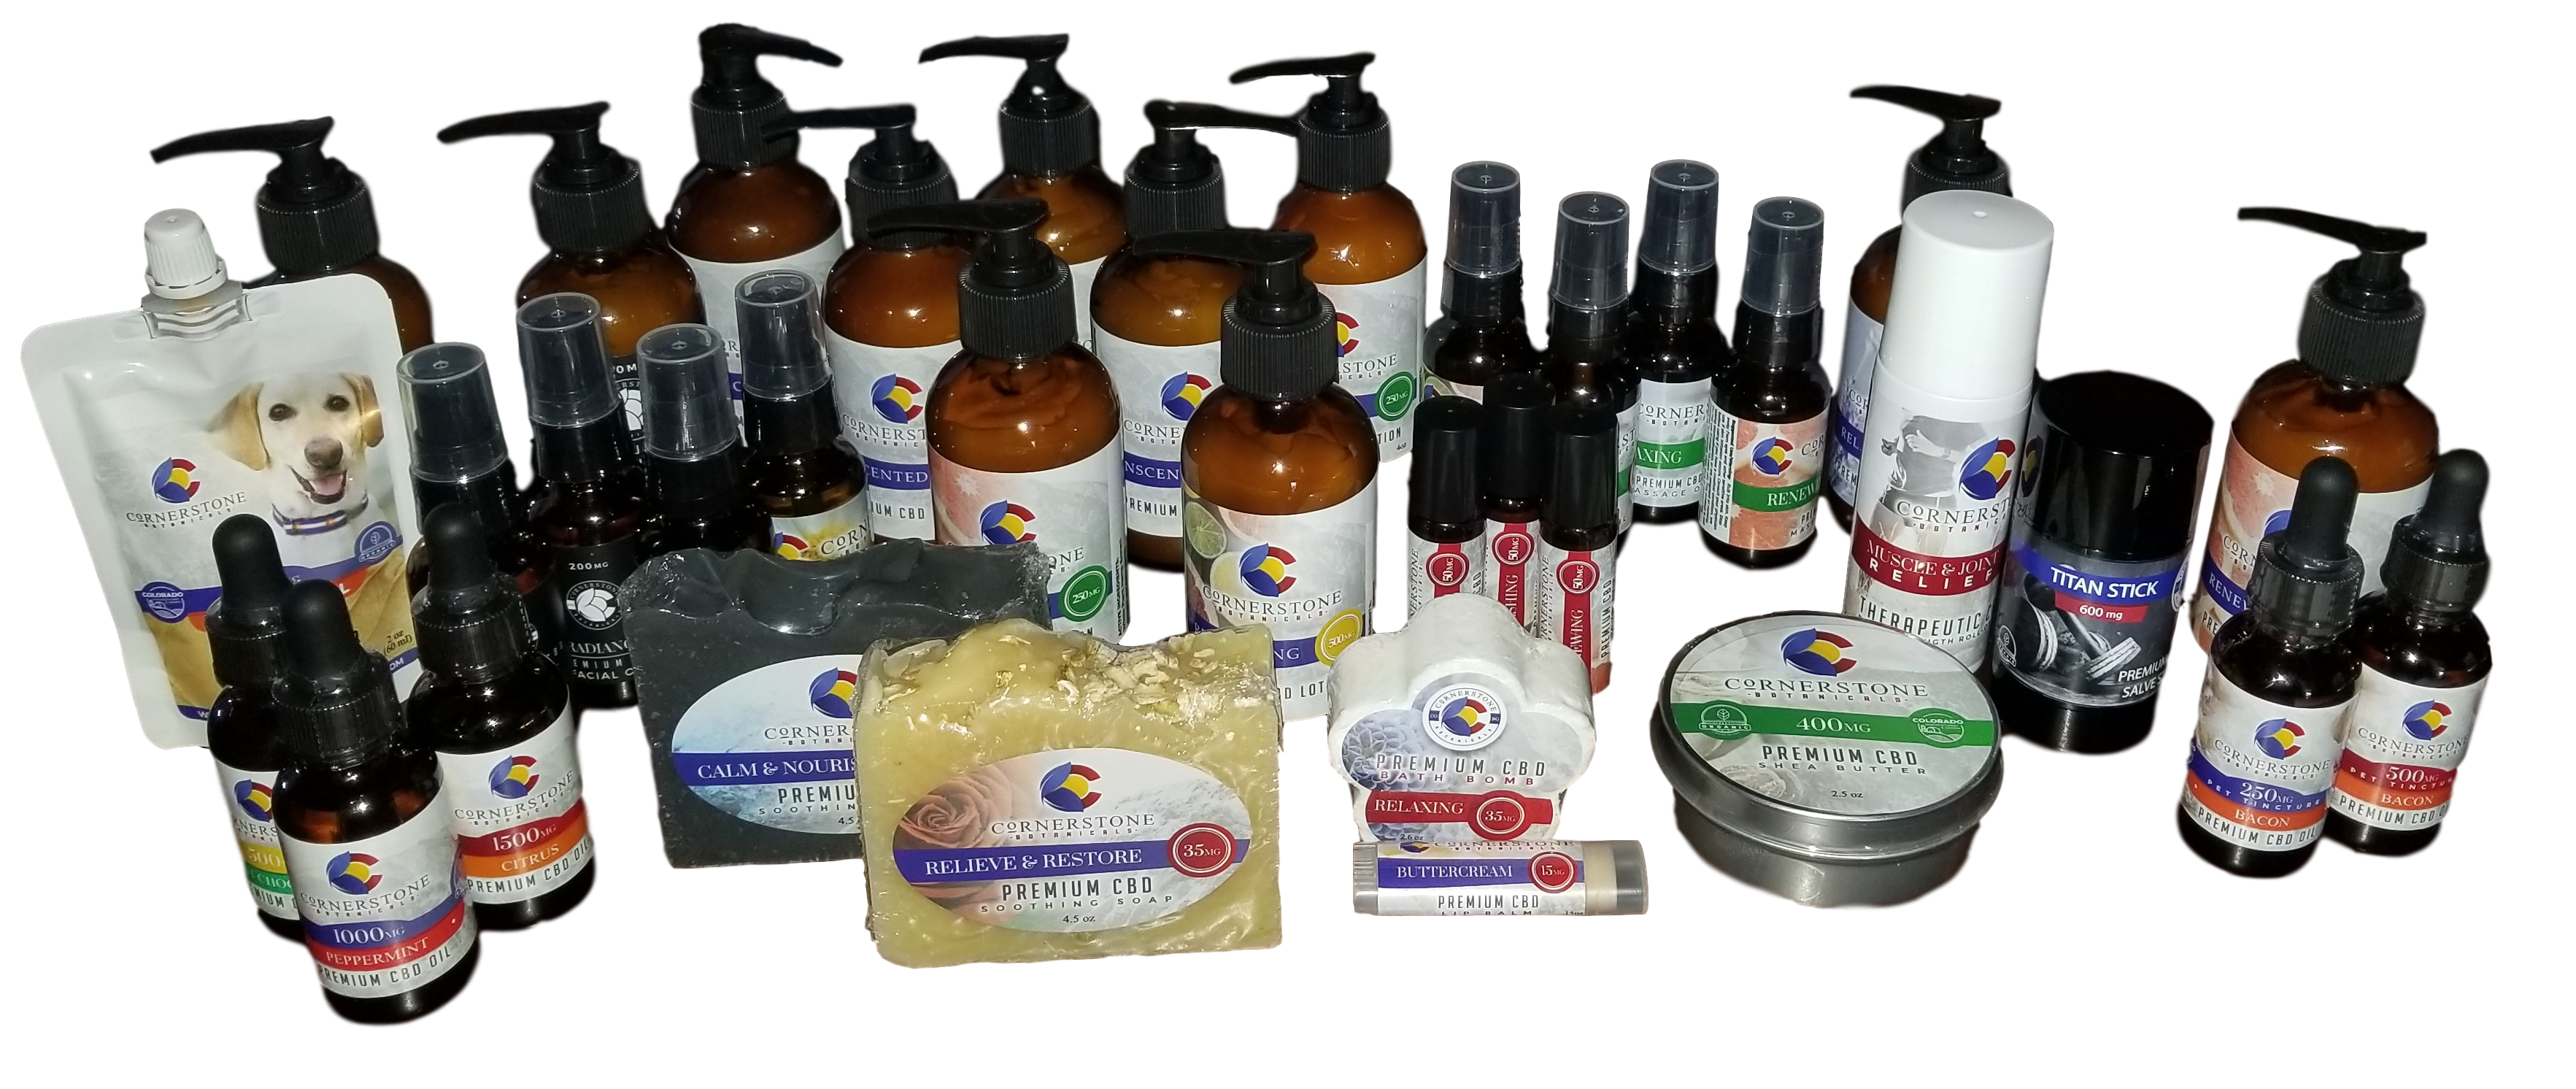 Cornerstone Botanicals Product Line-up